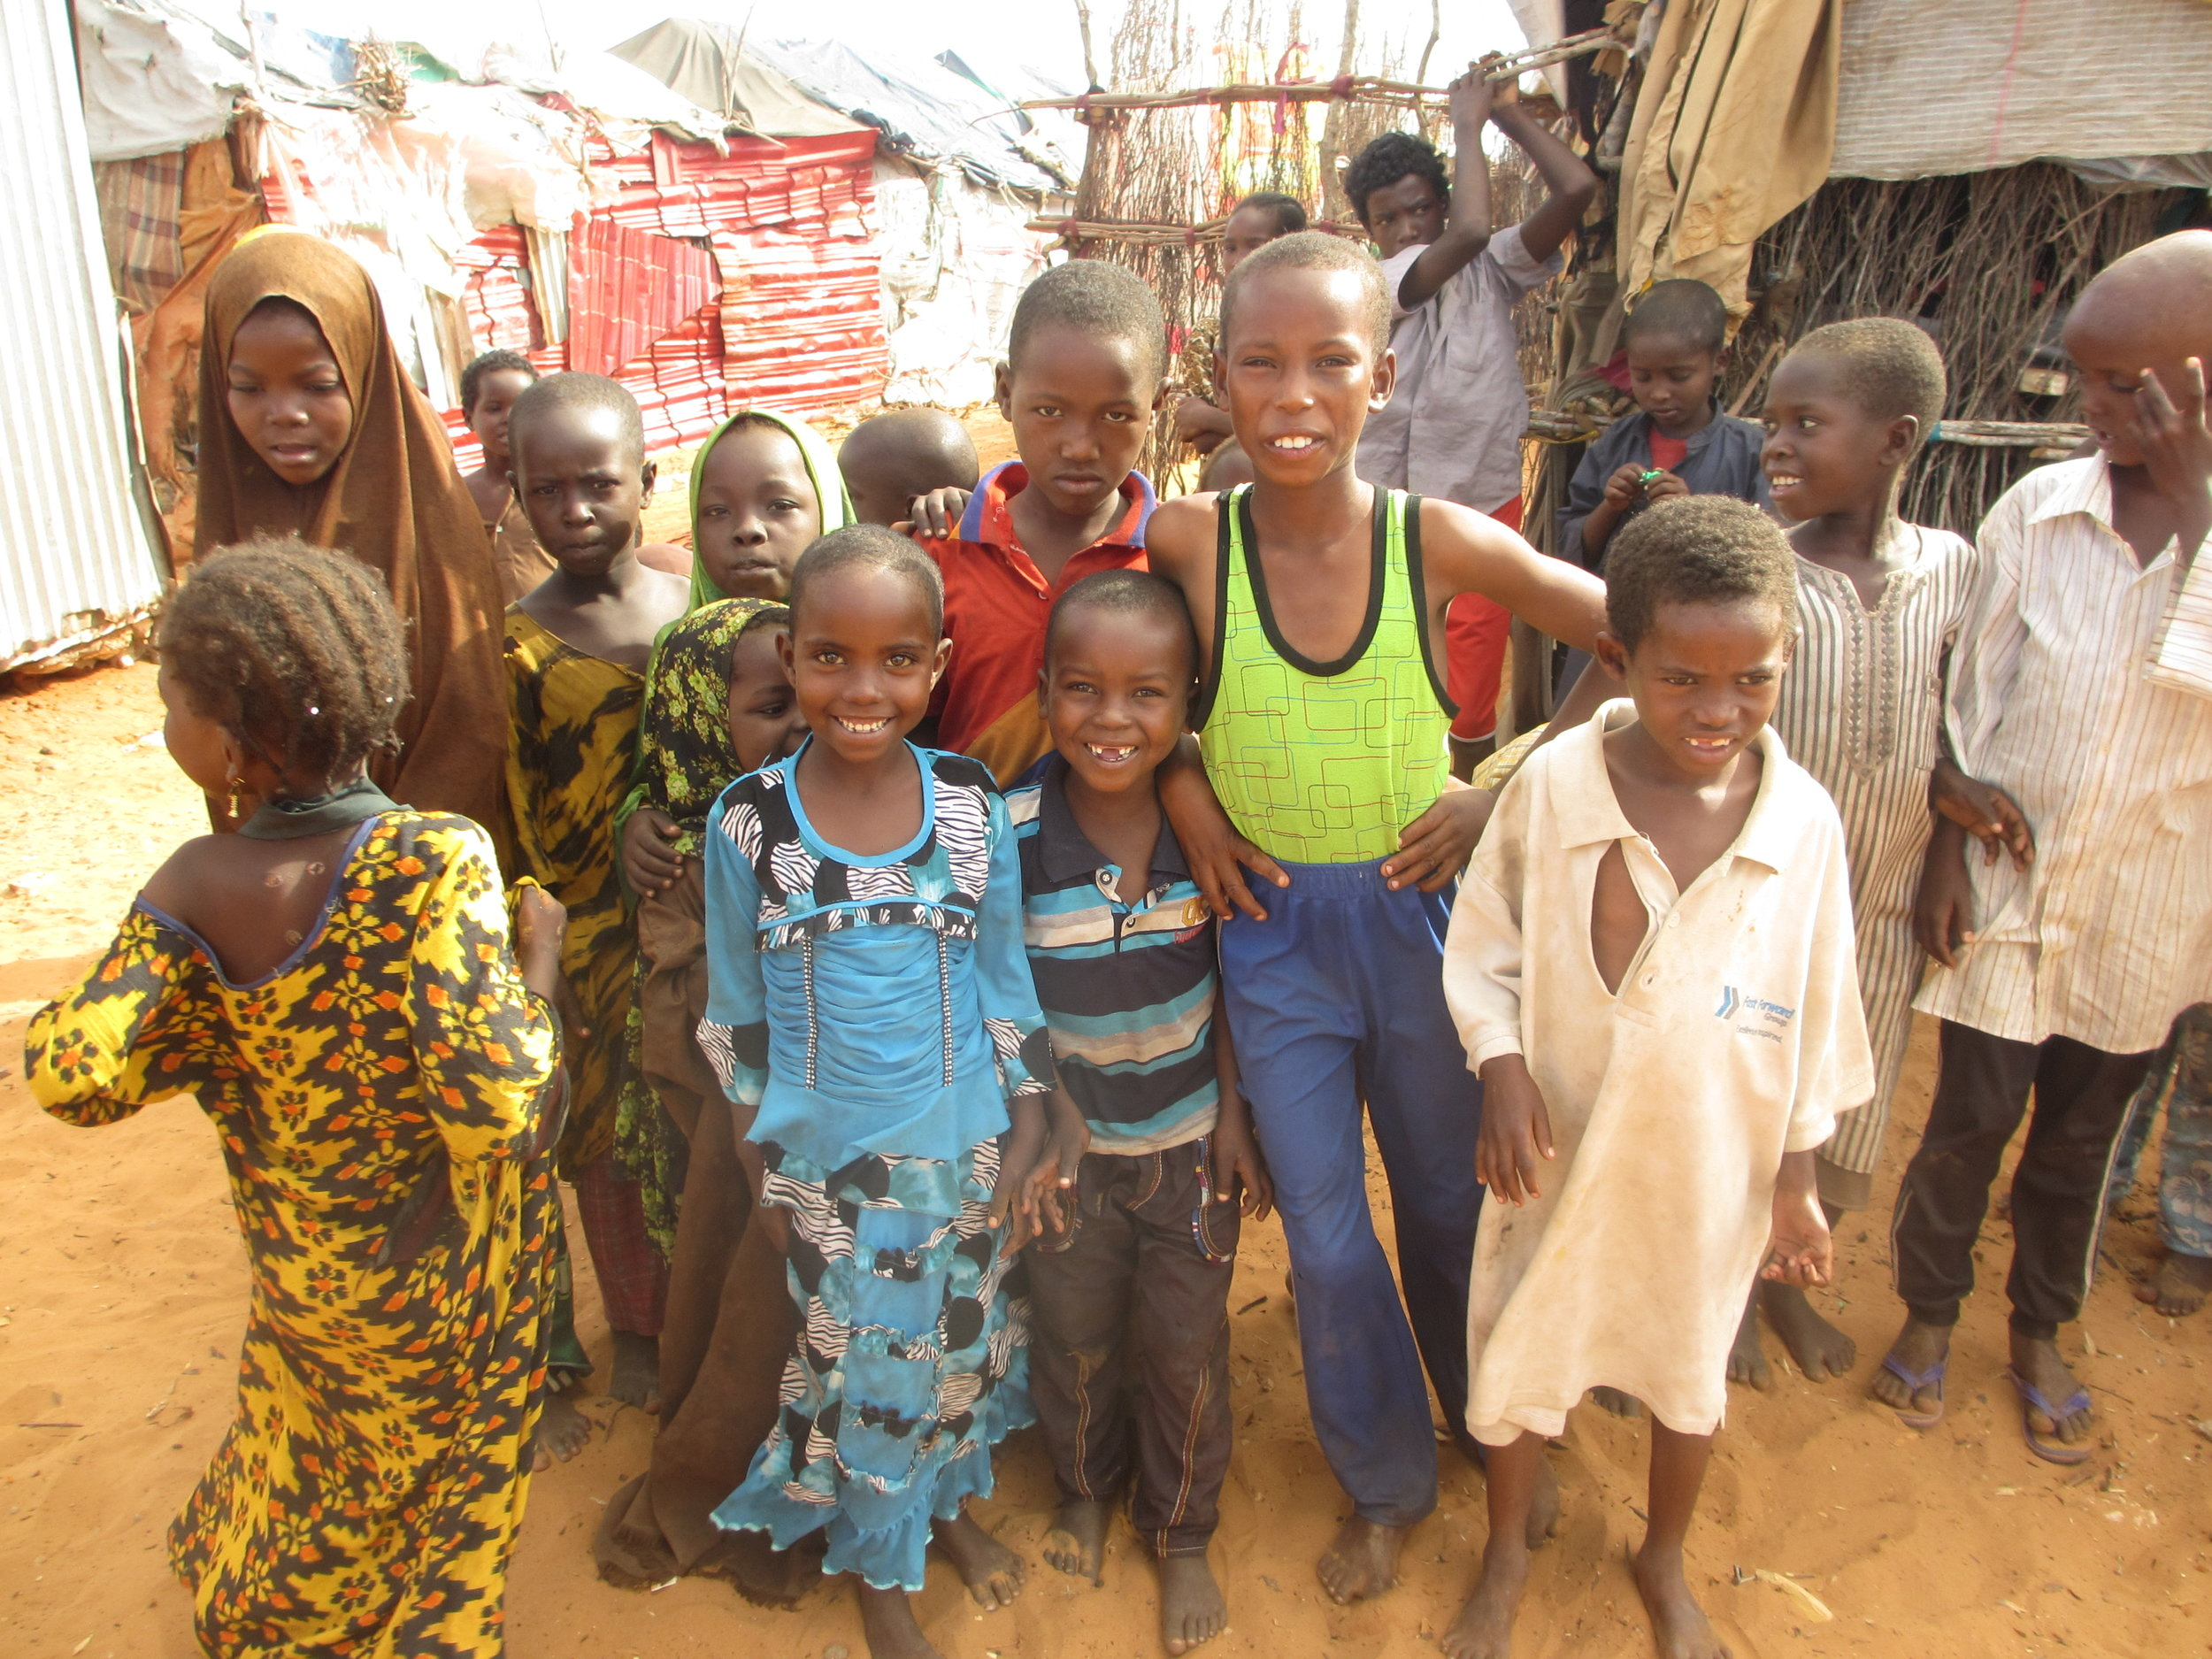 Thousands of children in IDP settlements lack any access to education.